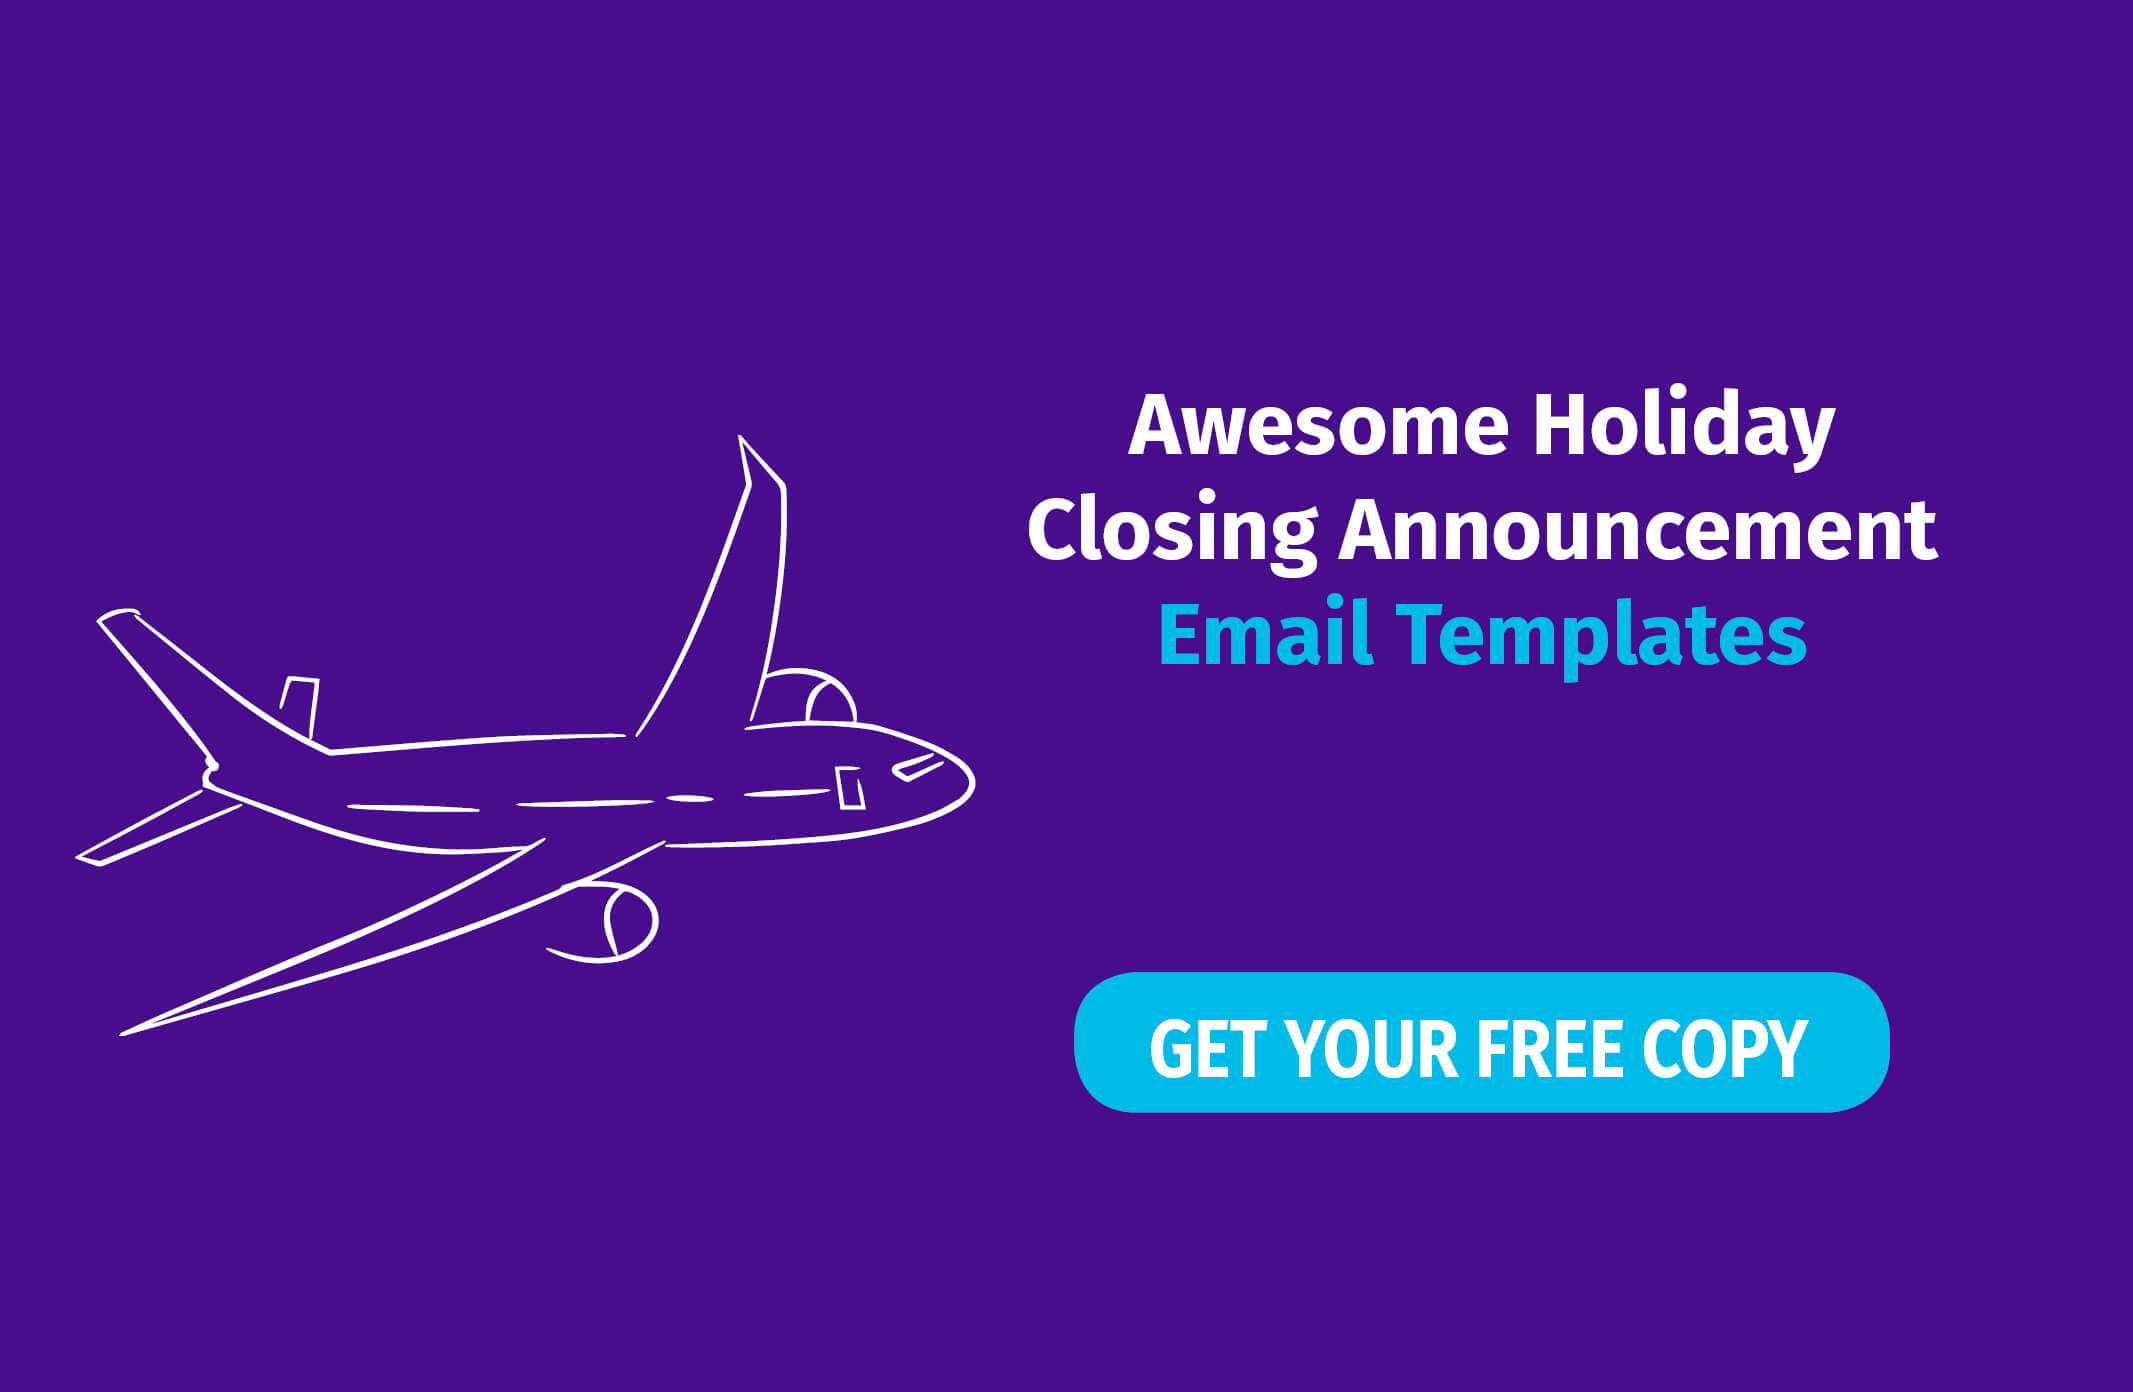 Christmas Holiday Closing Announcement.Awesome Holiday Closing Announcement Email Templates Smoove